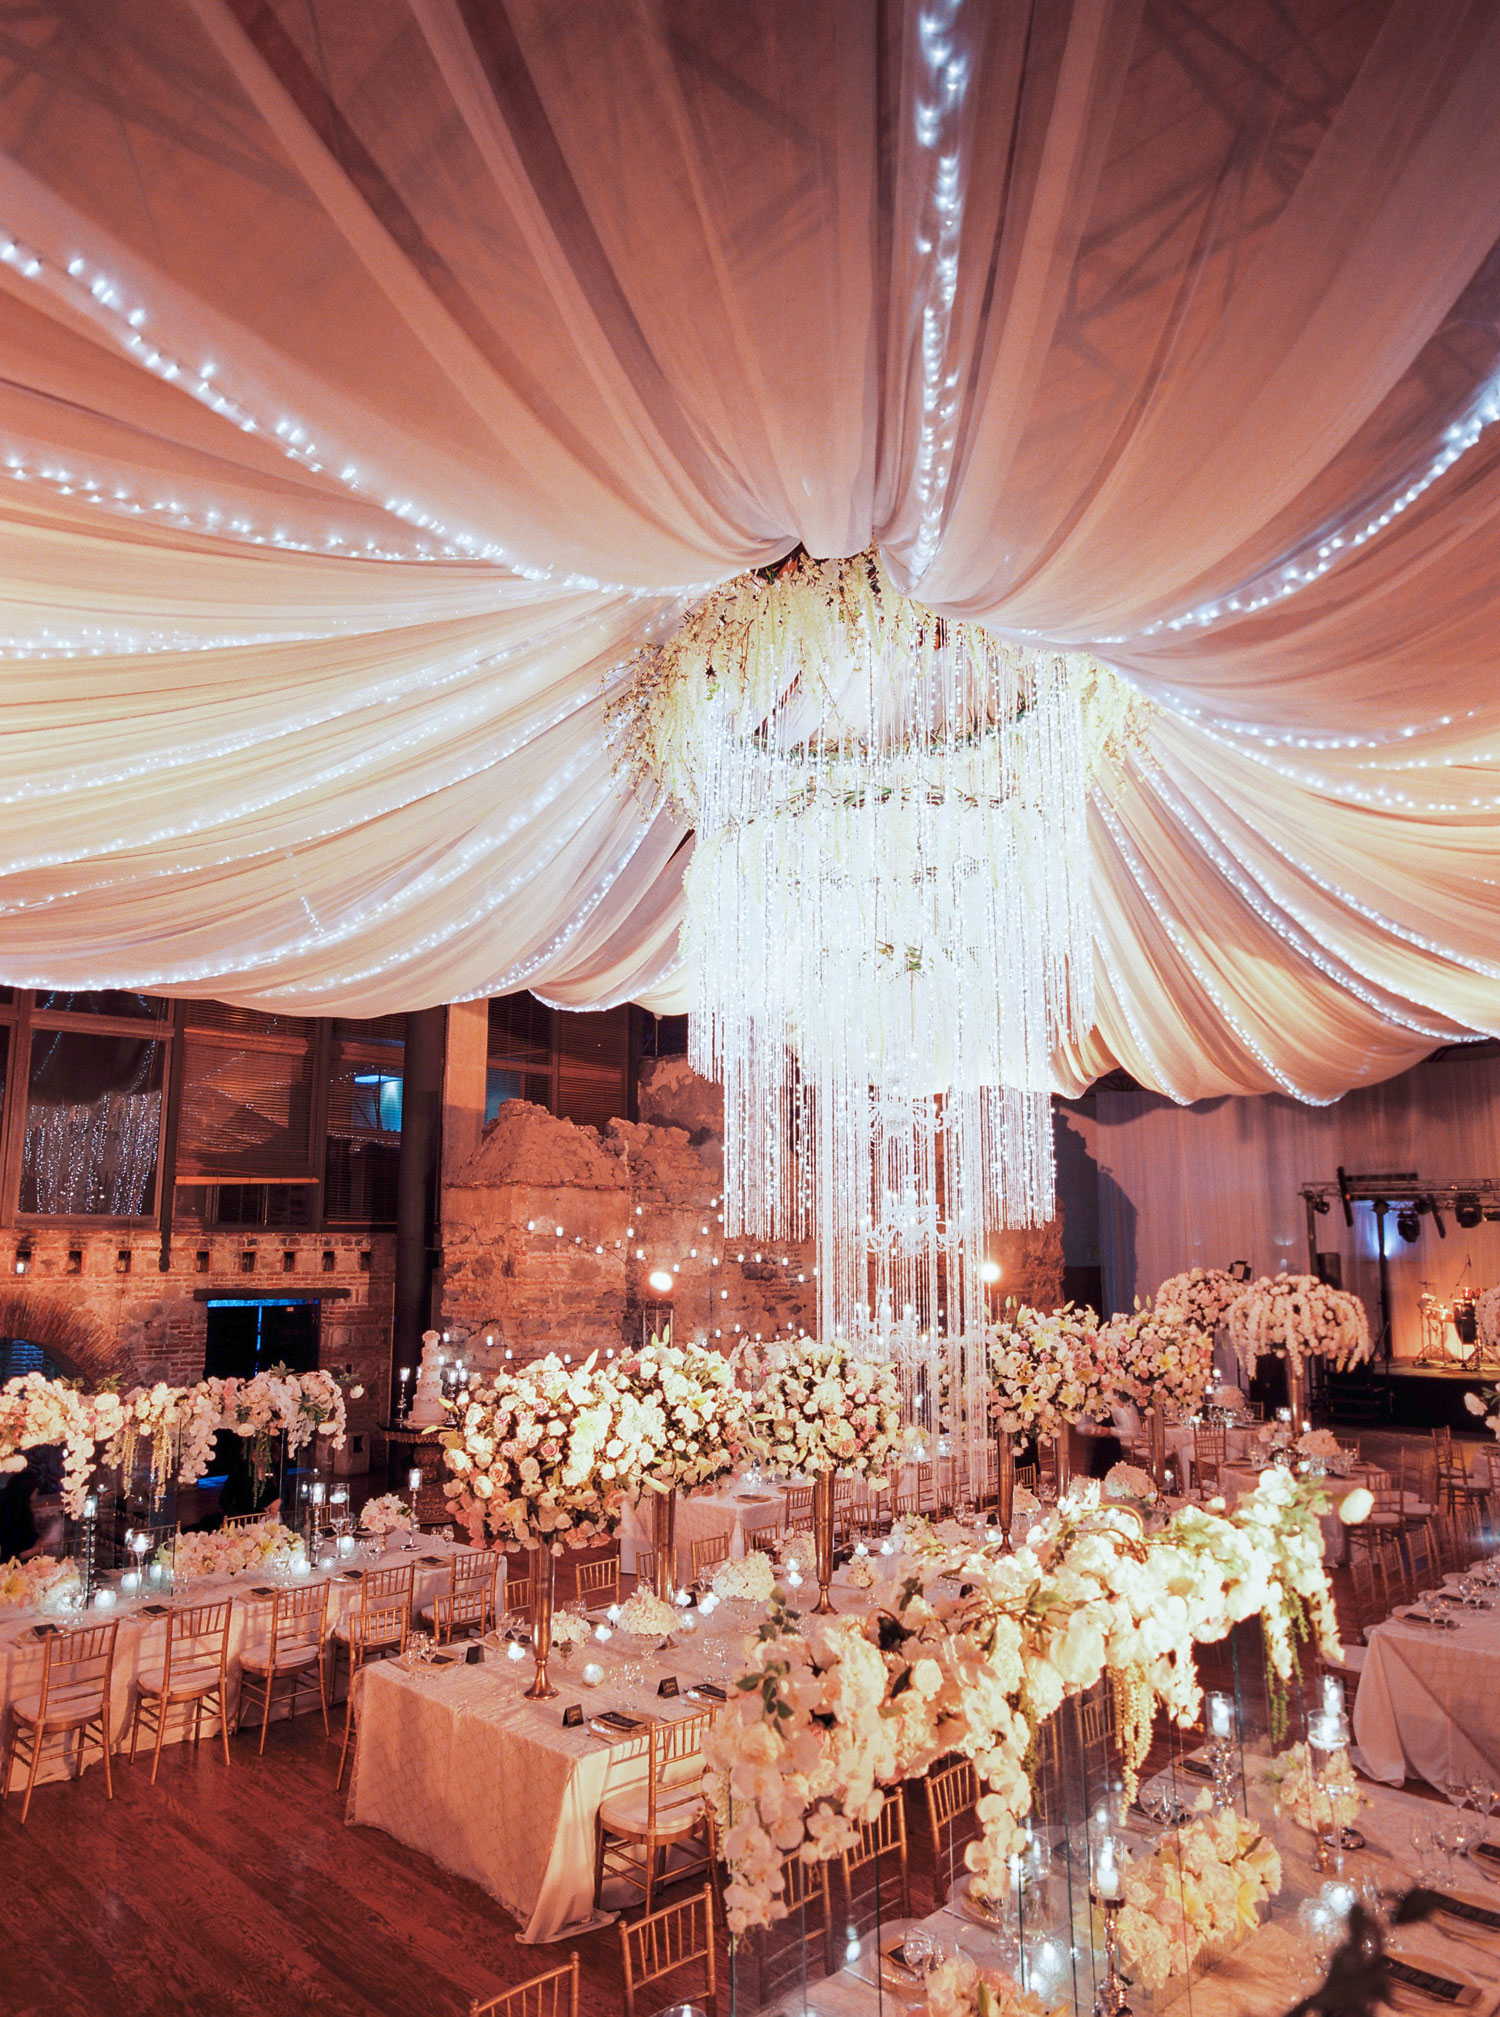 destination wedding reception guatemala with luxurious drapery from ceiling beams